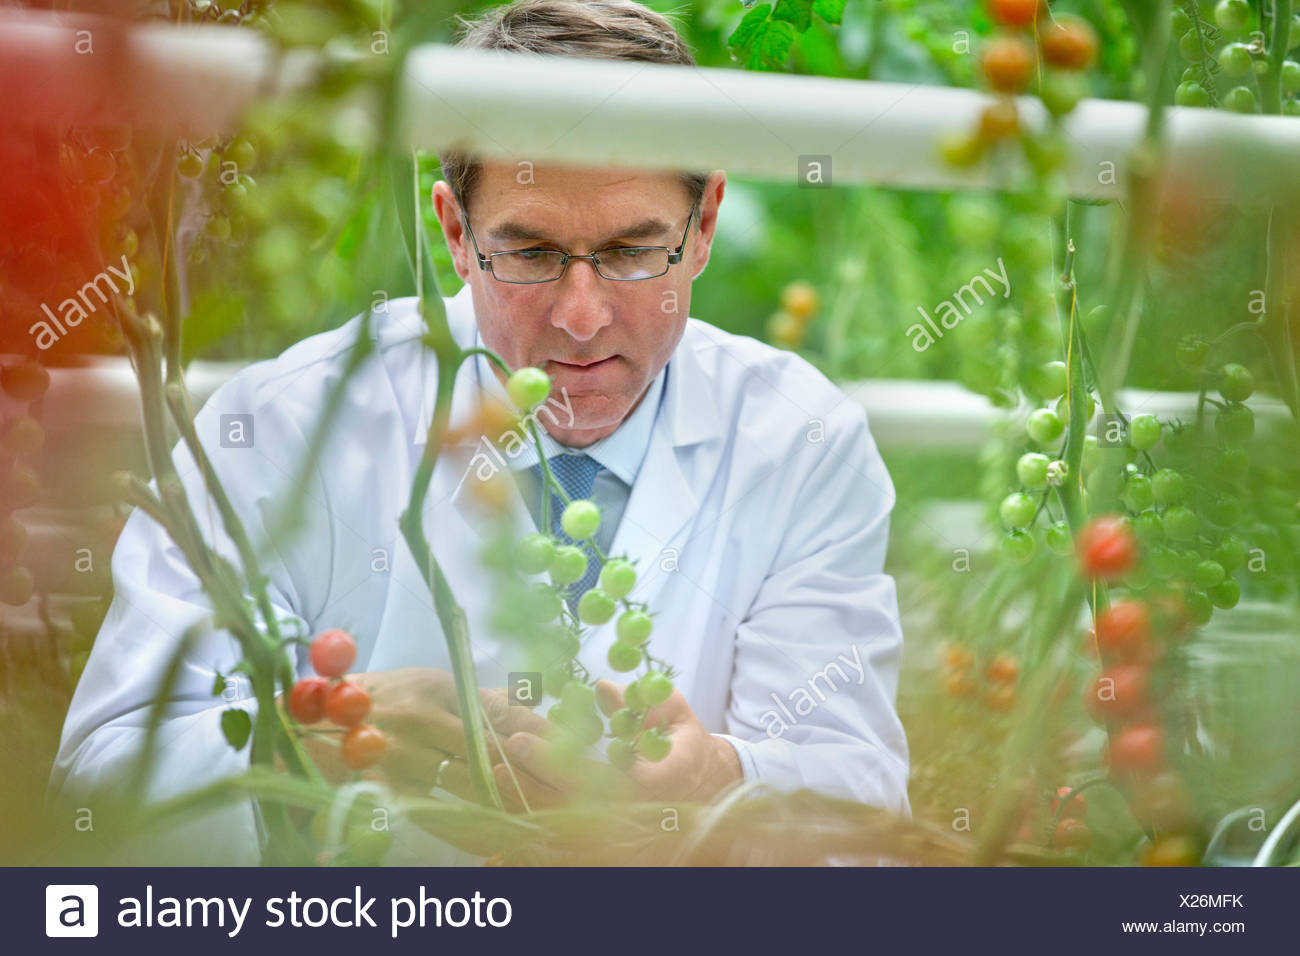 L'examen scientifique de l'alimentation de la vigne sur le mûrissement des tomates Photo Stock